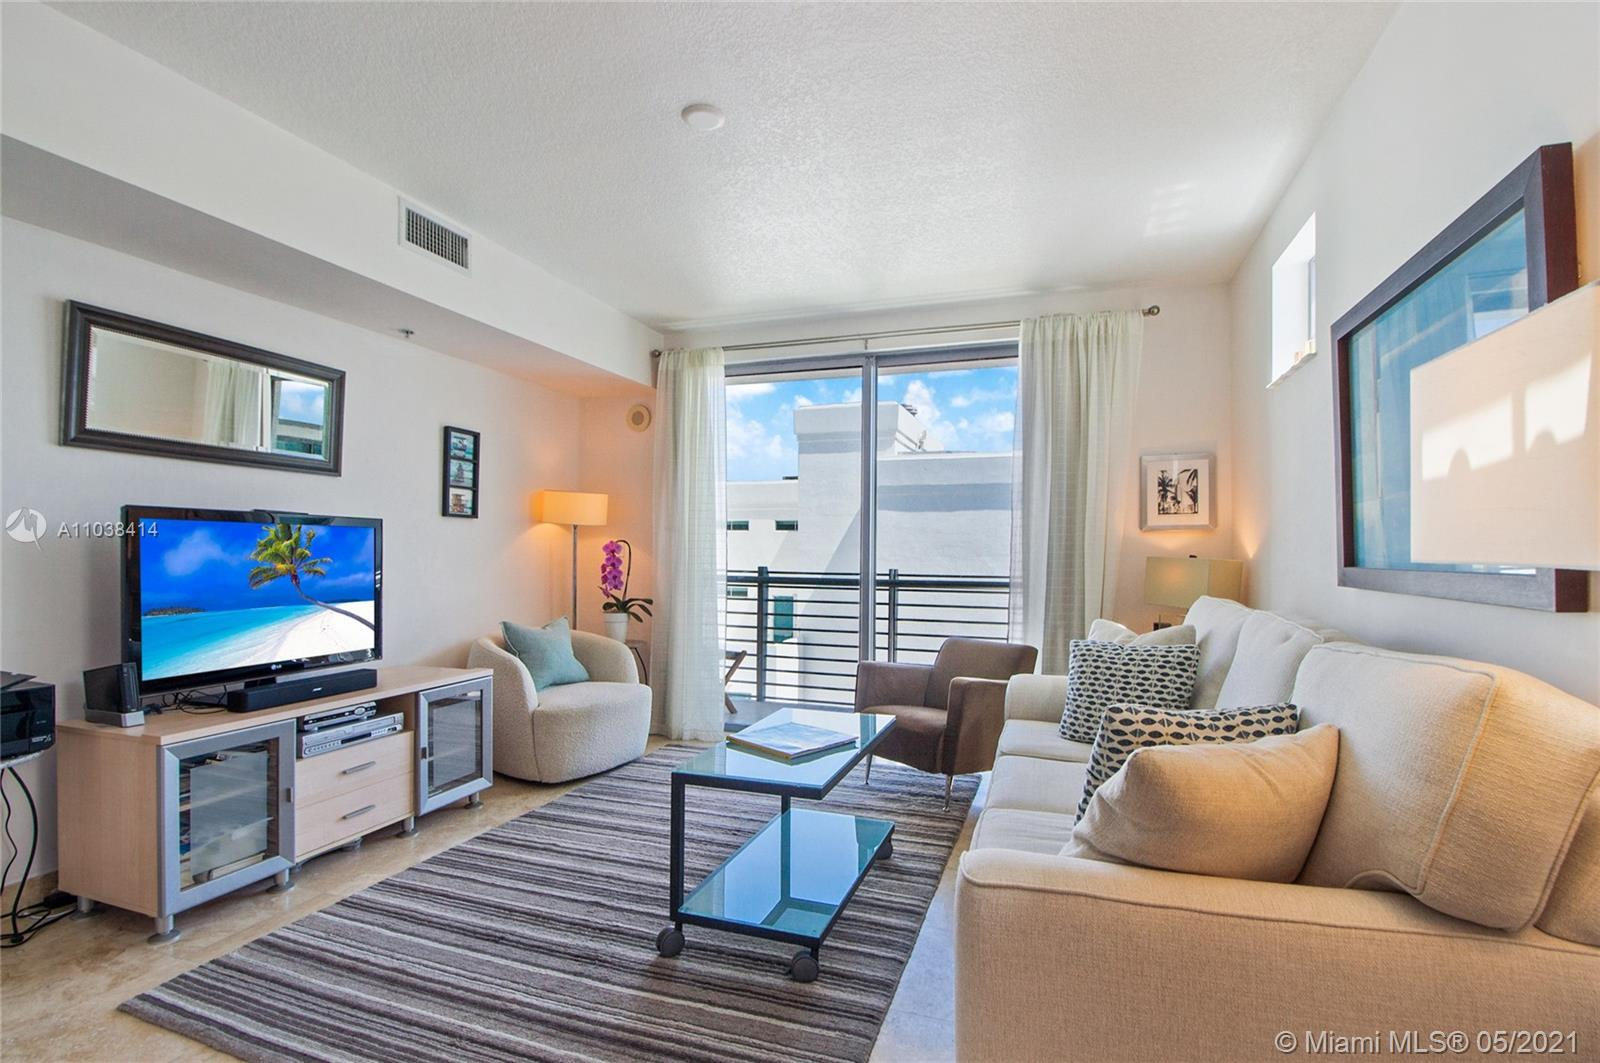 Located in the coveted South of fifth neighborhood, this top floor, sun filled unit features an open